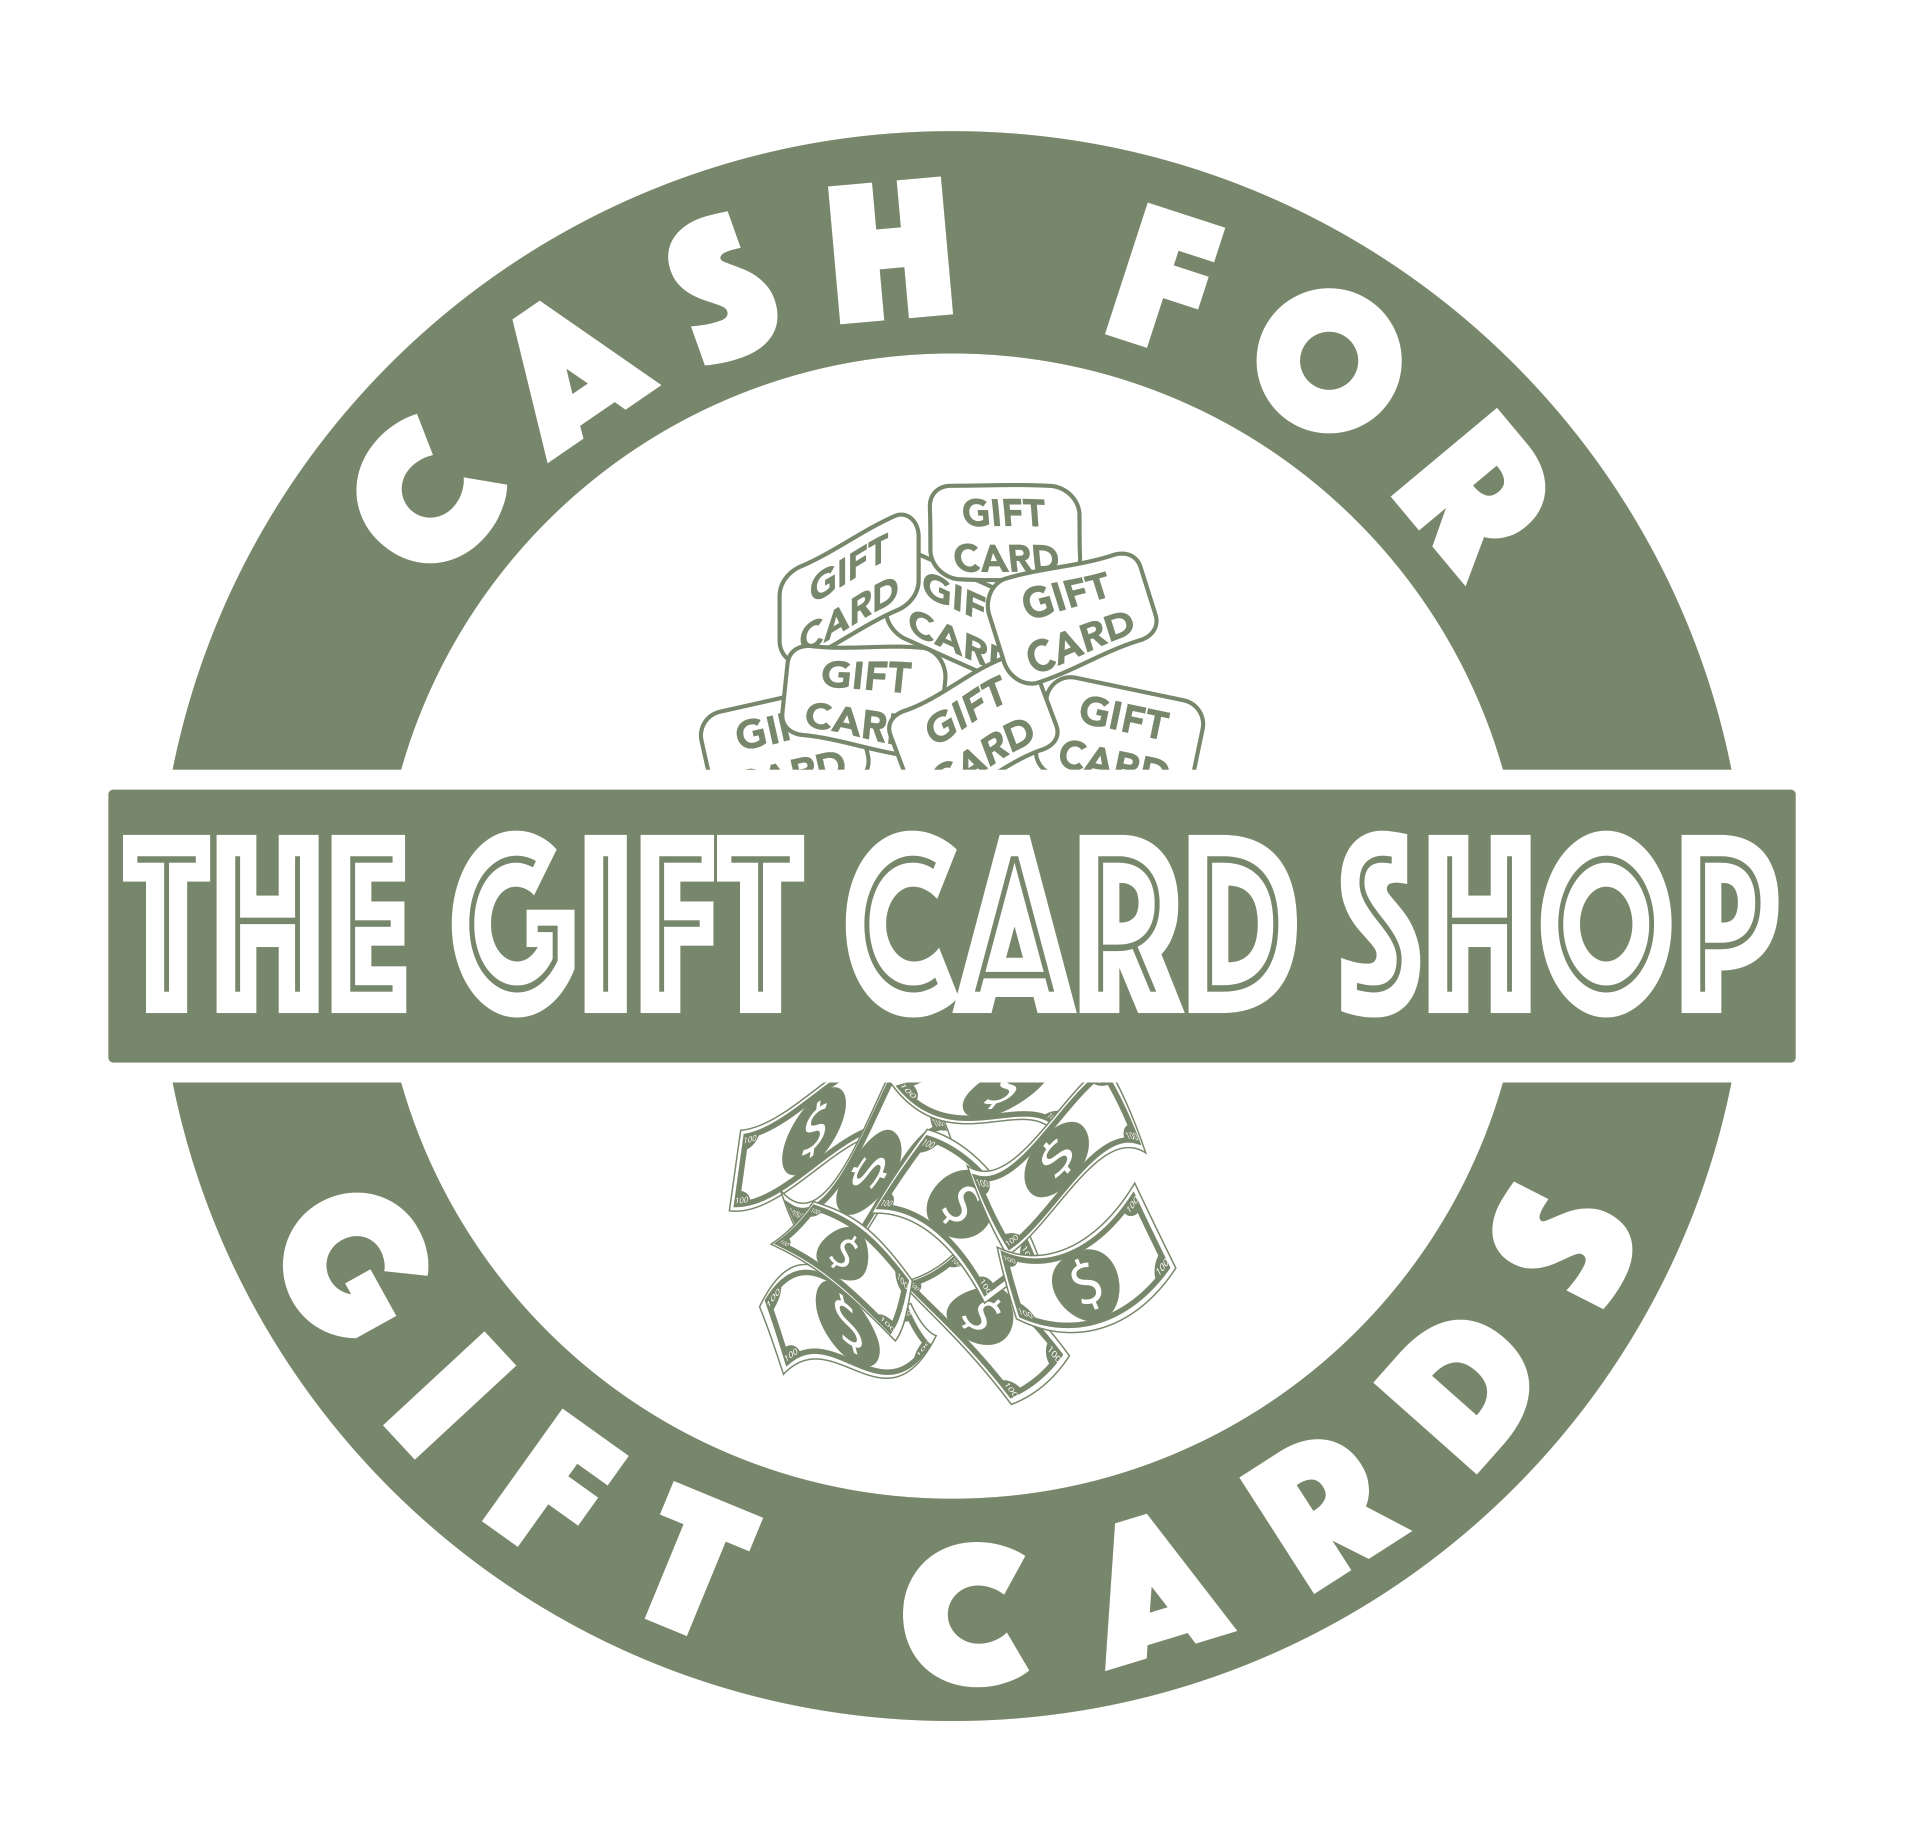 Prize clipart gift card. Shop